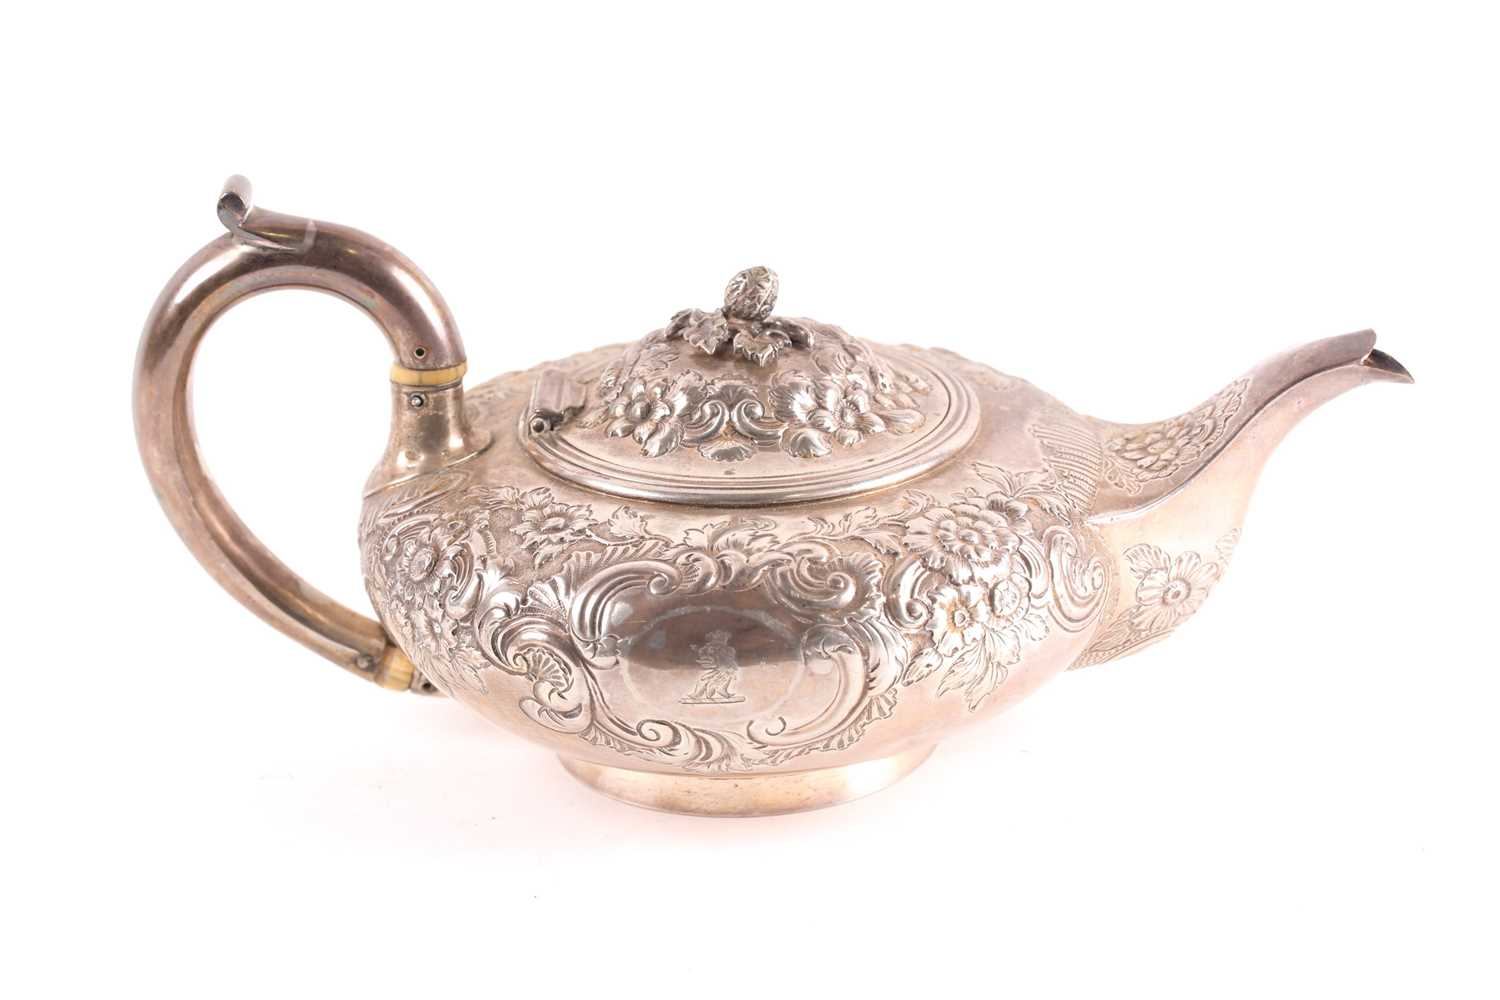 A William IV silver teapot, London 1830 by Joseph Angell, of squat form with repoussé foliate - Image 2 of 5